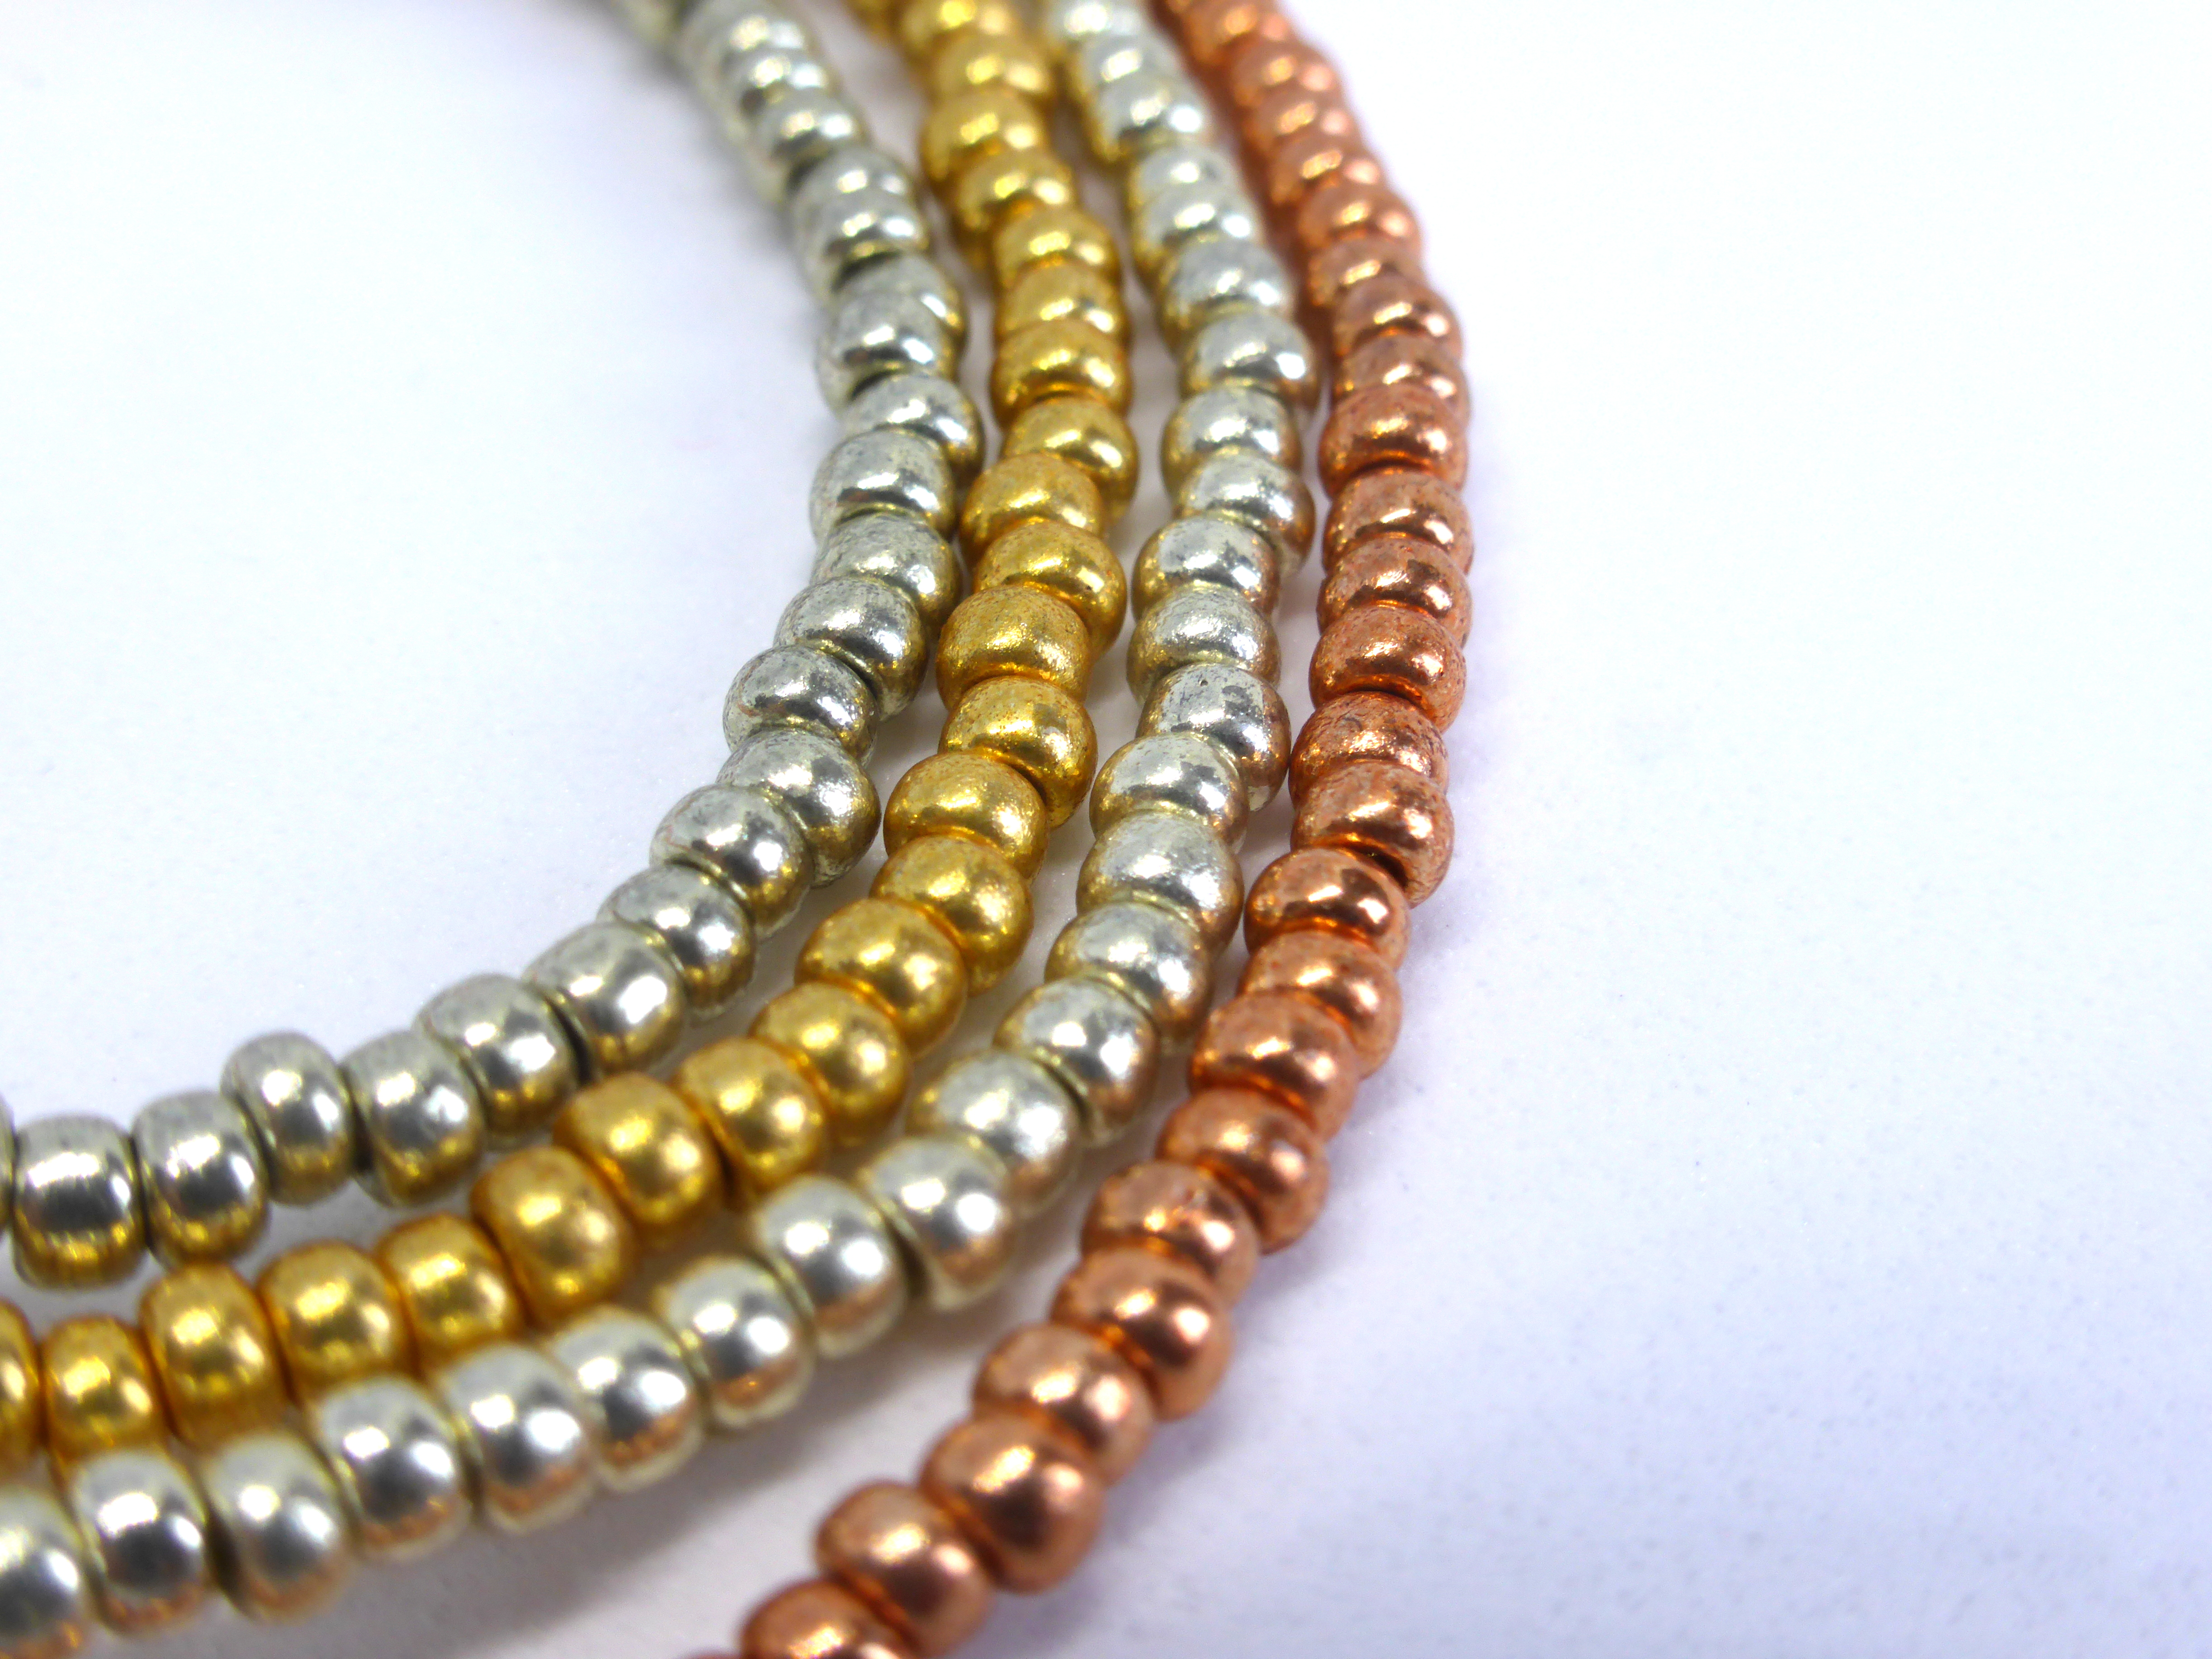 Seed bead colours